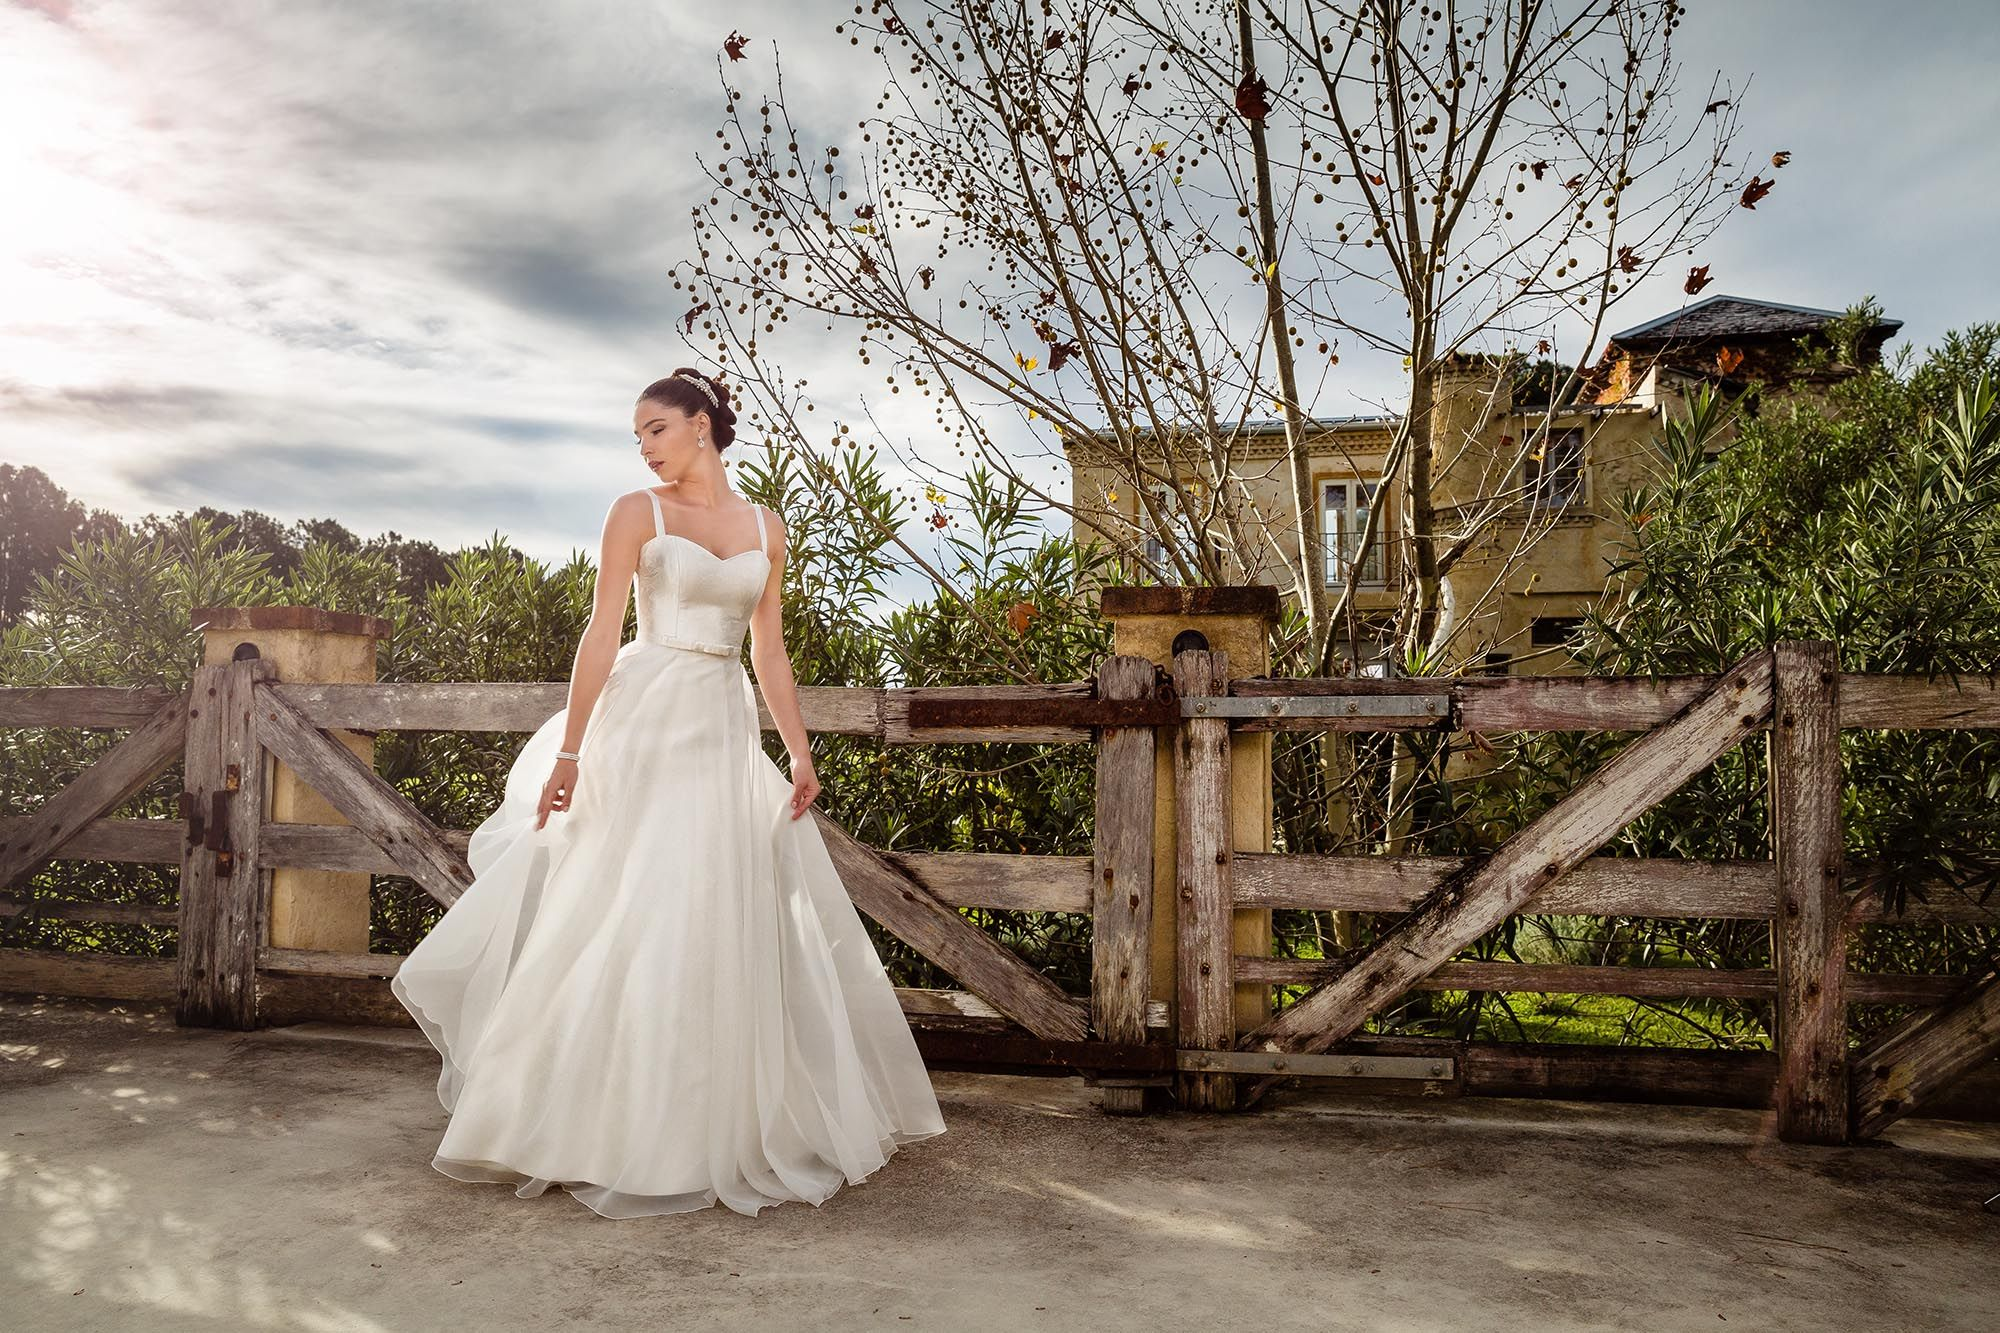 The 'Maggie' gown from Bertossi Brides at Paddington Weddings. P perfect example of less is more in bridal design!! www.paddingtonweddings.com.au